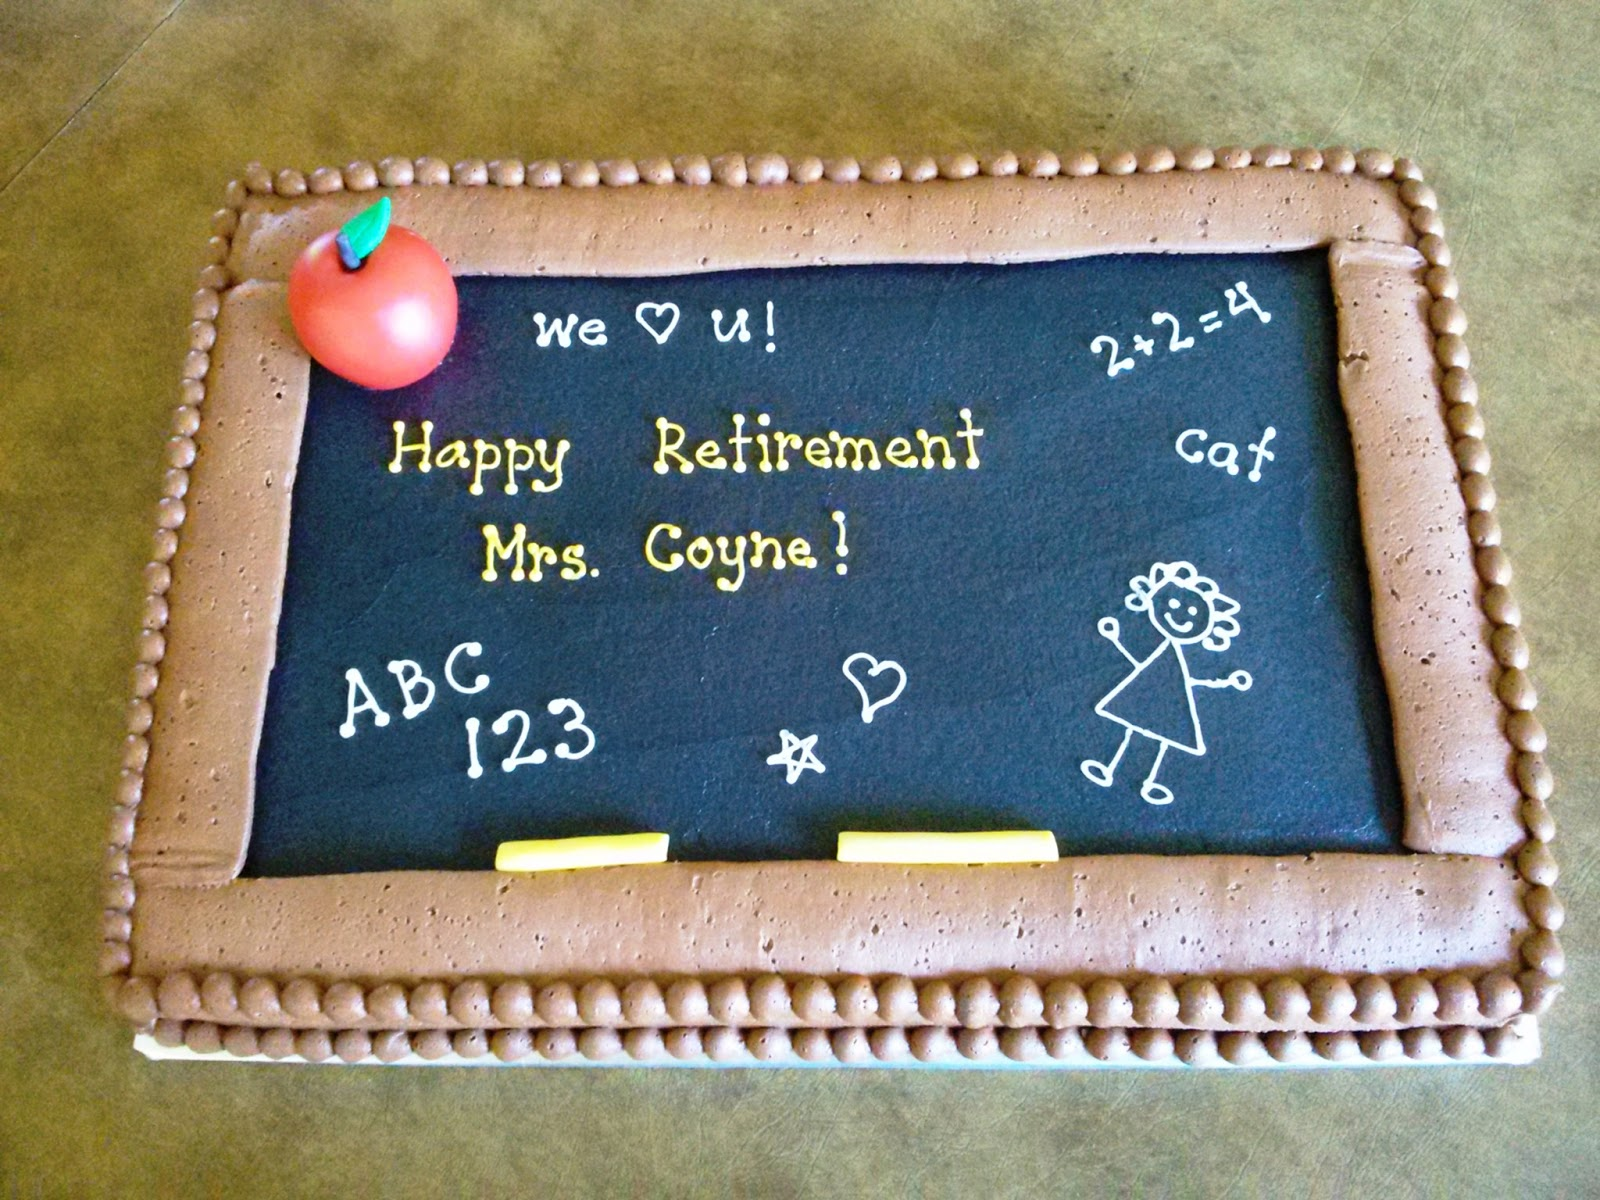 Retirement Cake Designs For Teachers : Simply Sweet: Teacher Retirement Cake